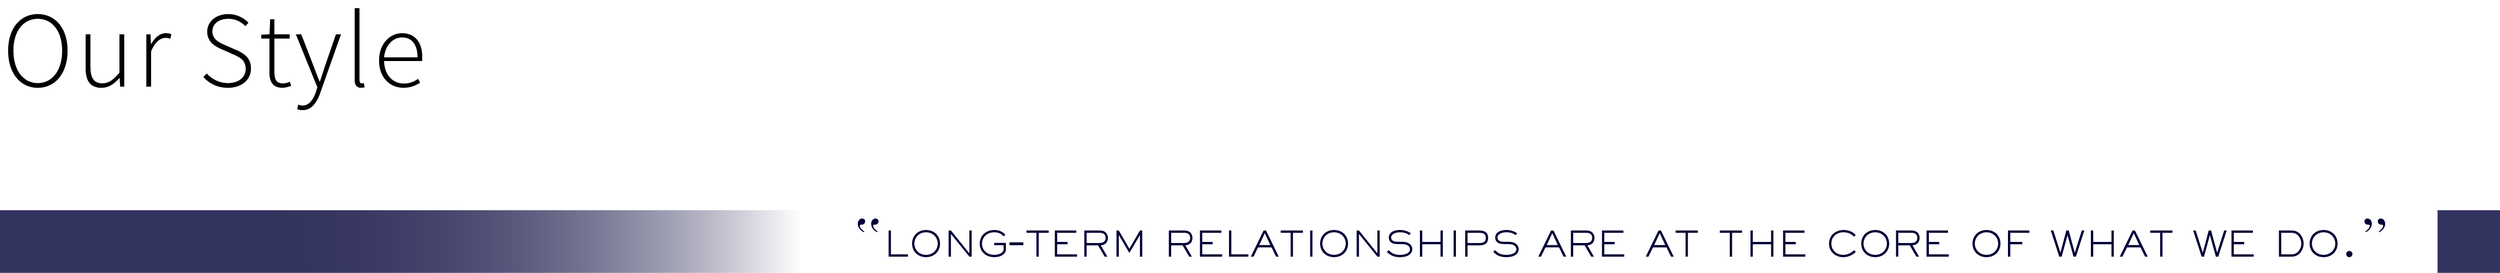 """Bass & Lemer LLP: """"Long-term relationships are at the core of what we do."""""""